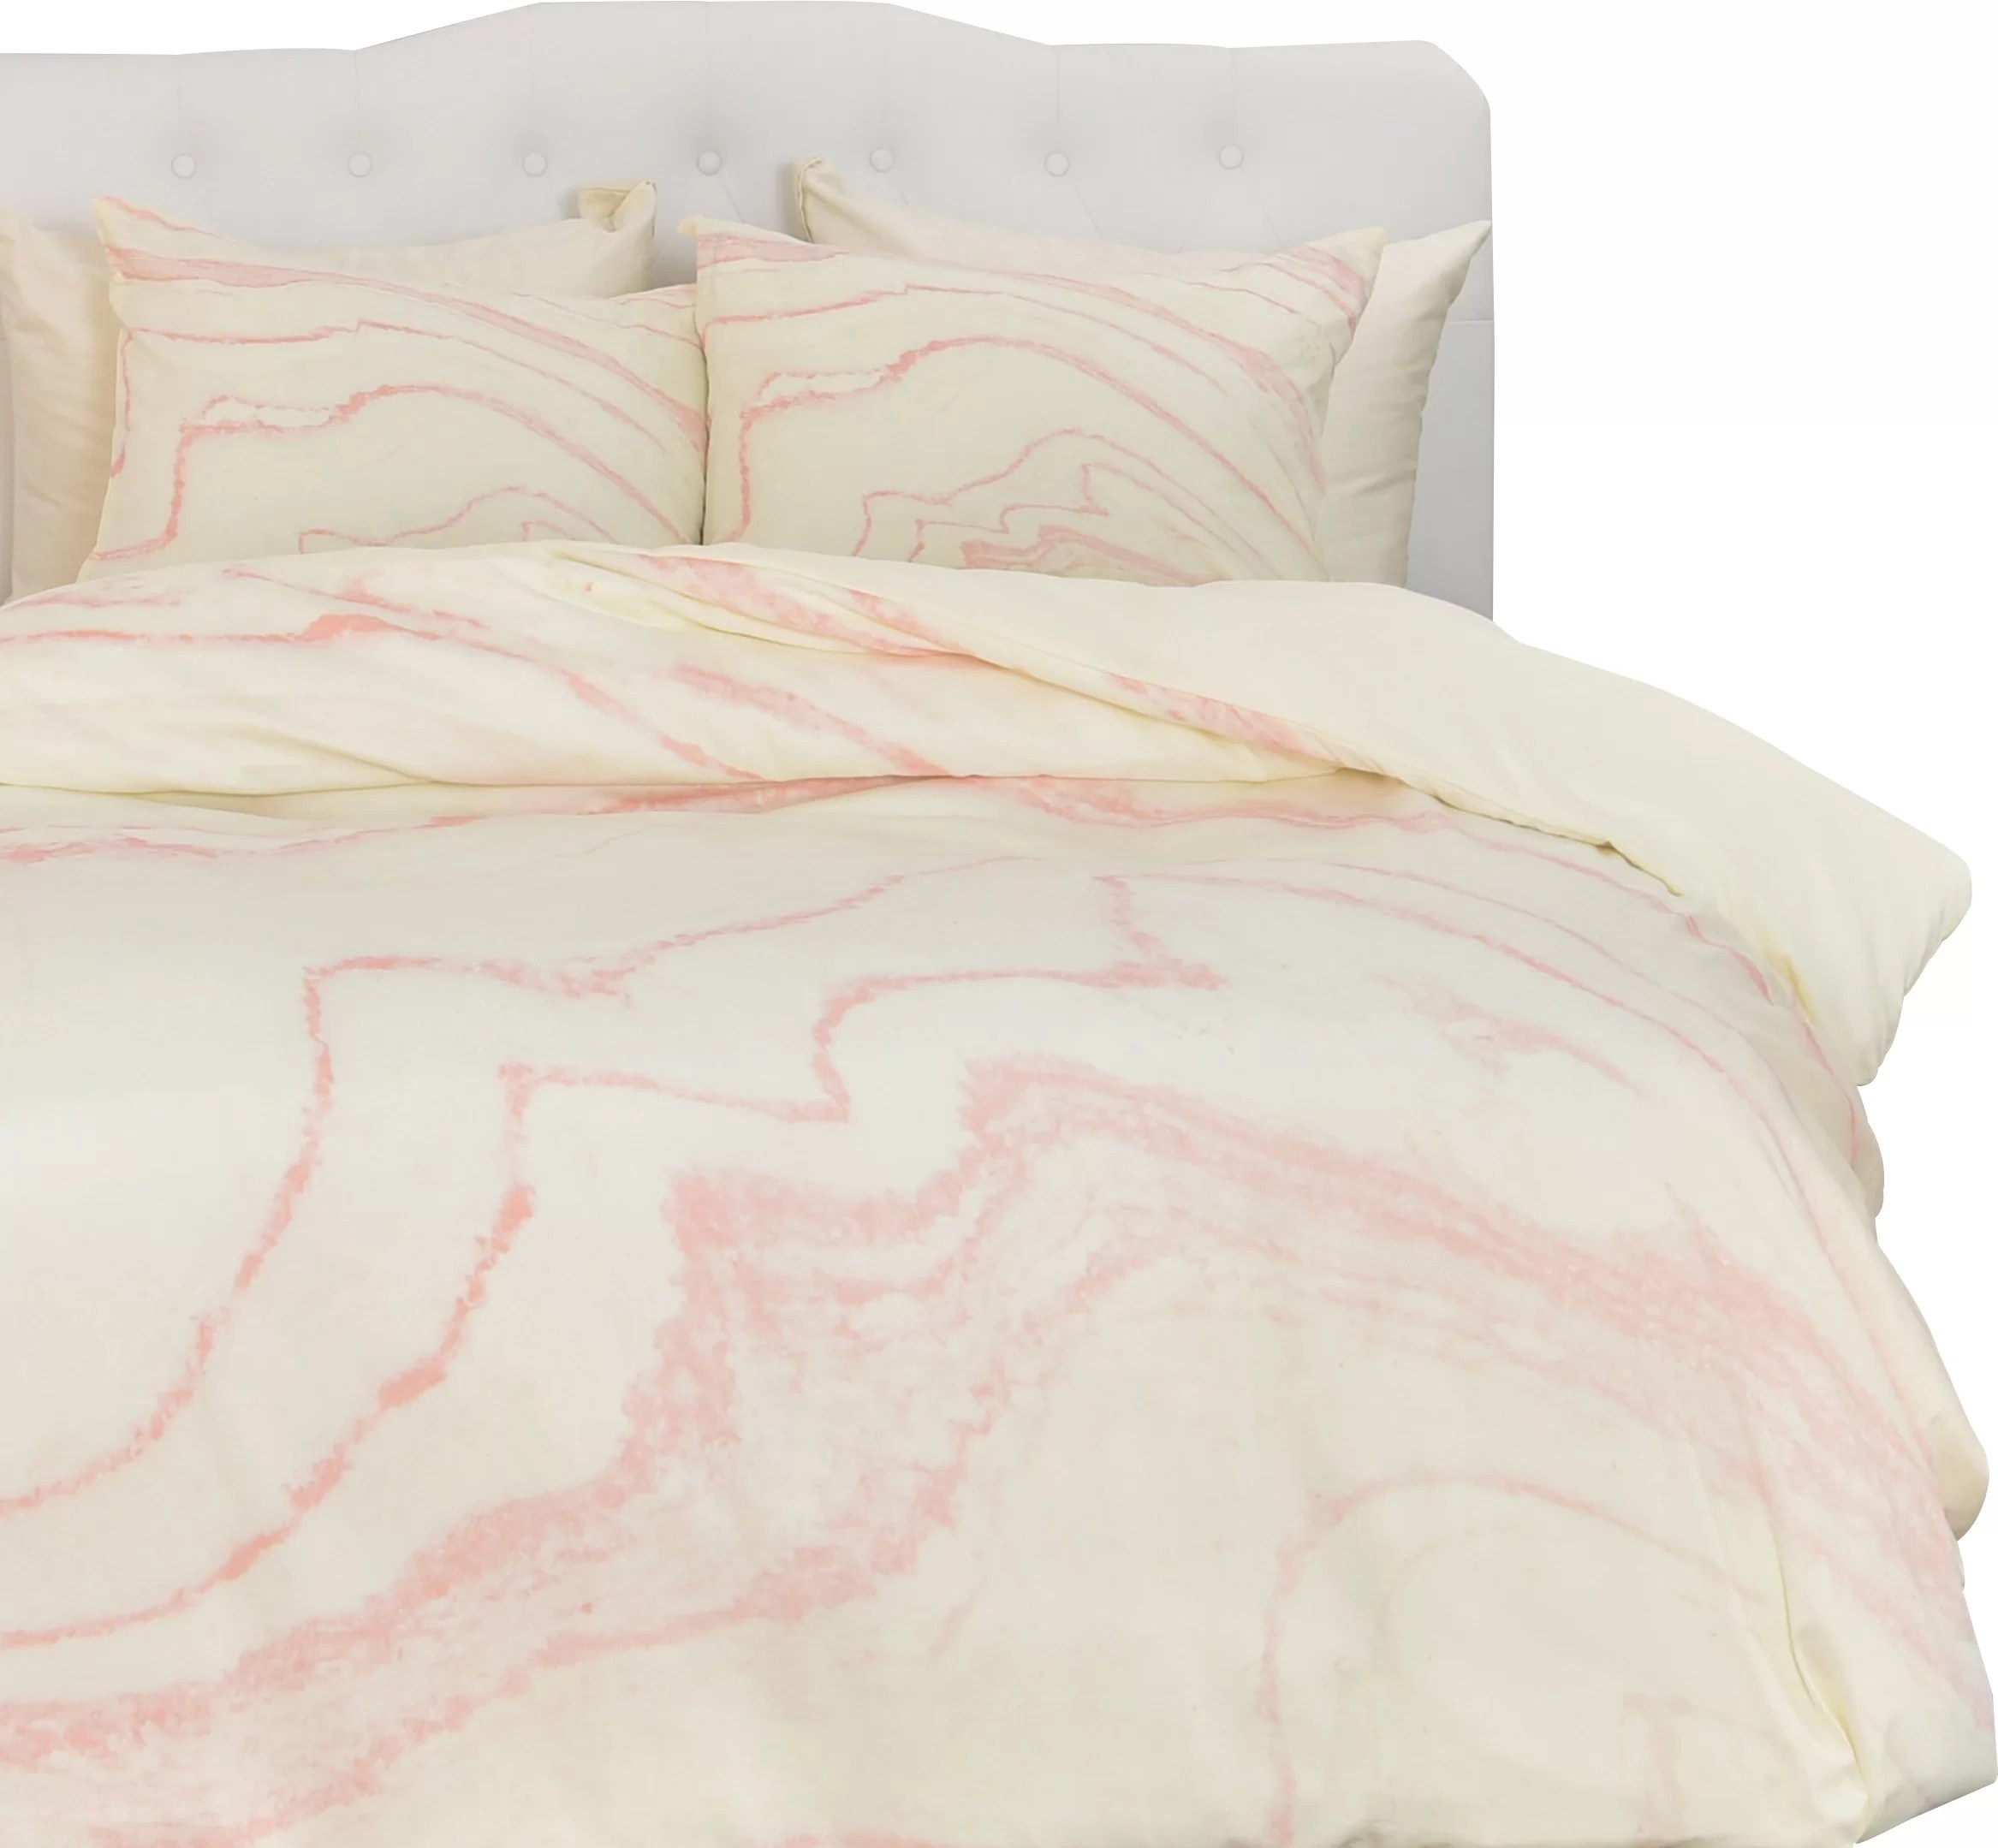 Blush Pink Quilt Cover Currans Blush Marble Duvet Cover Set